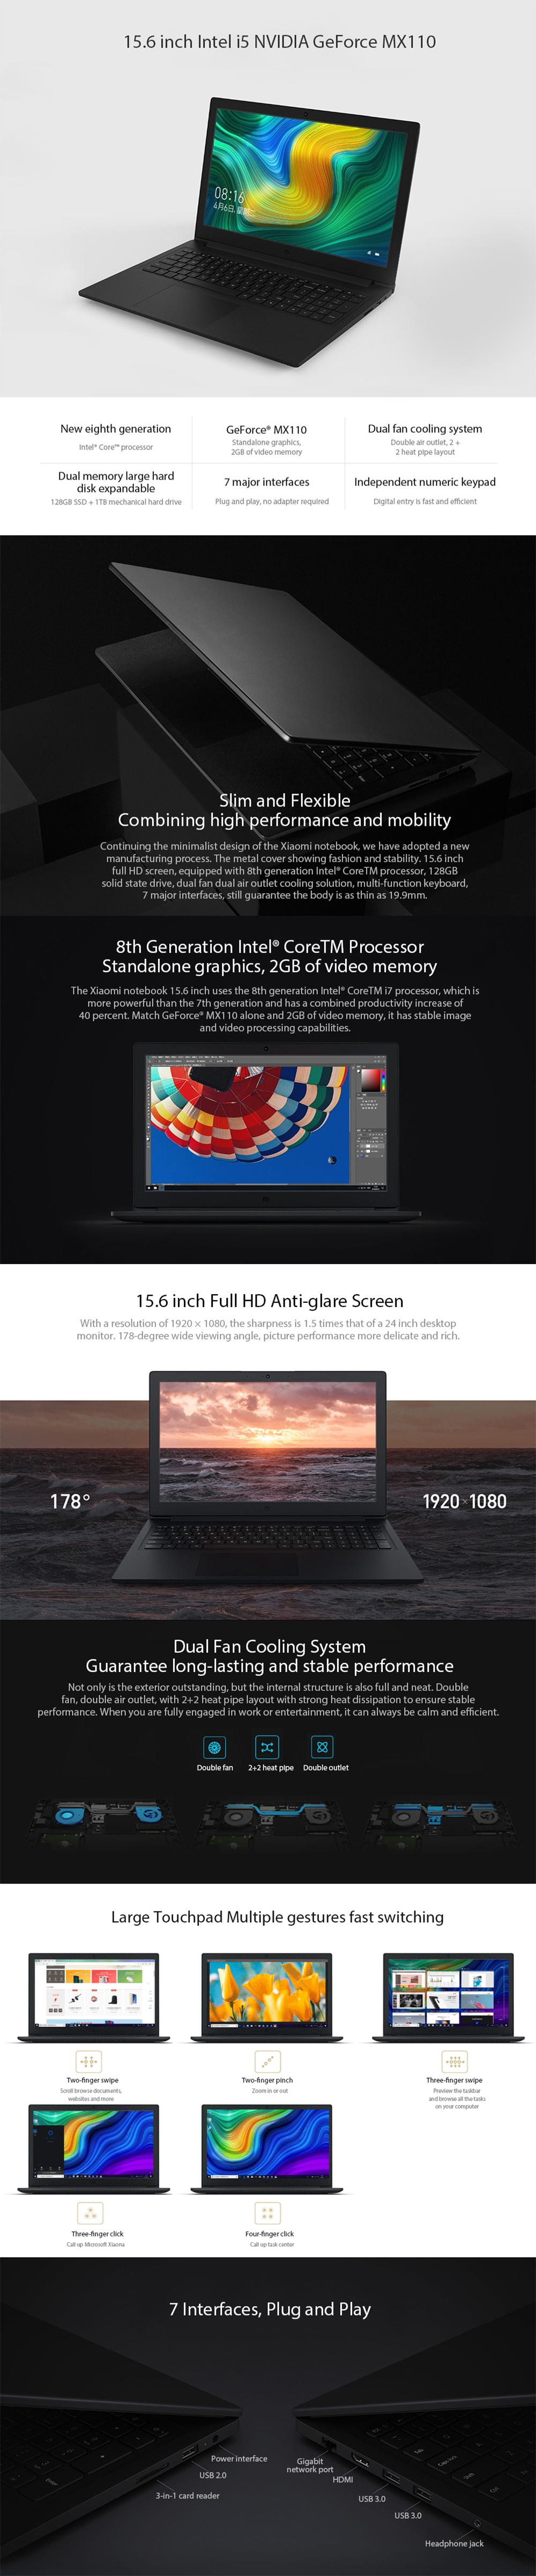 Original-Xiaomi-Mi-Laptop-156-Inch-Intel-i5-8250U-NVIDIA-GeForce-MX110-4GB-DDR4-128GB-SATA-SSD-1TB-H-1360935